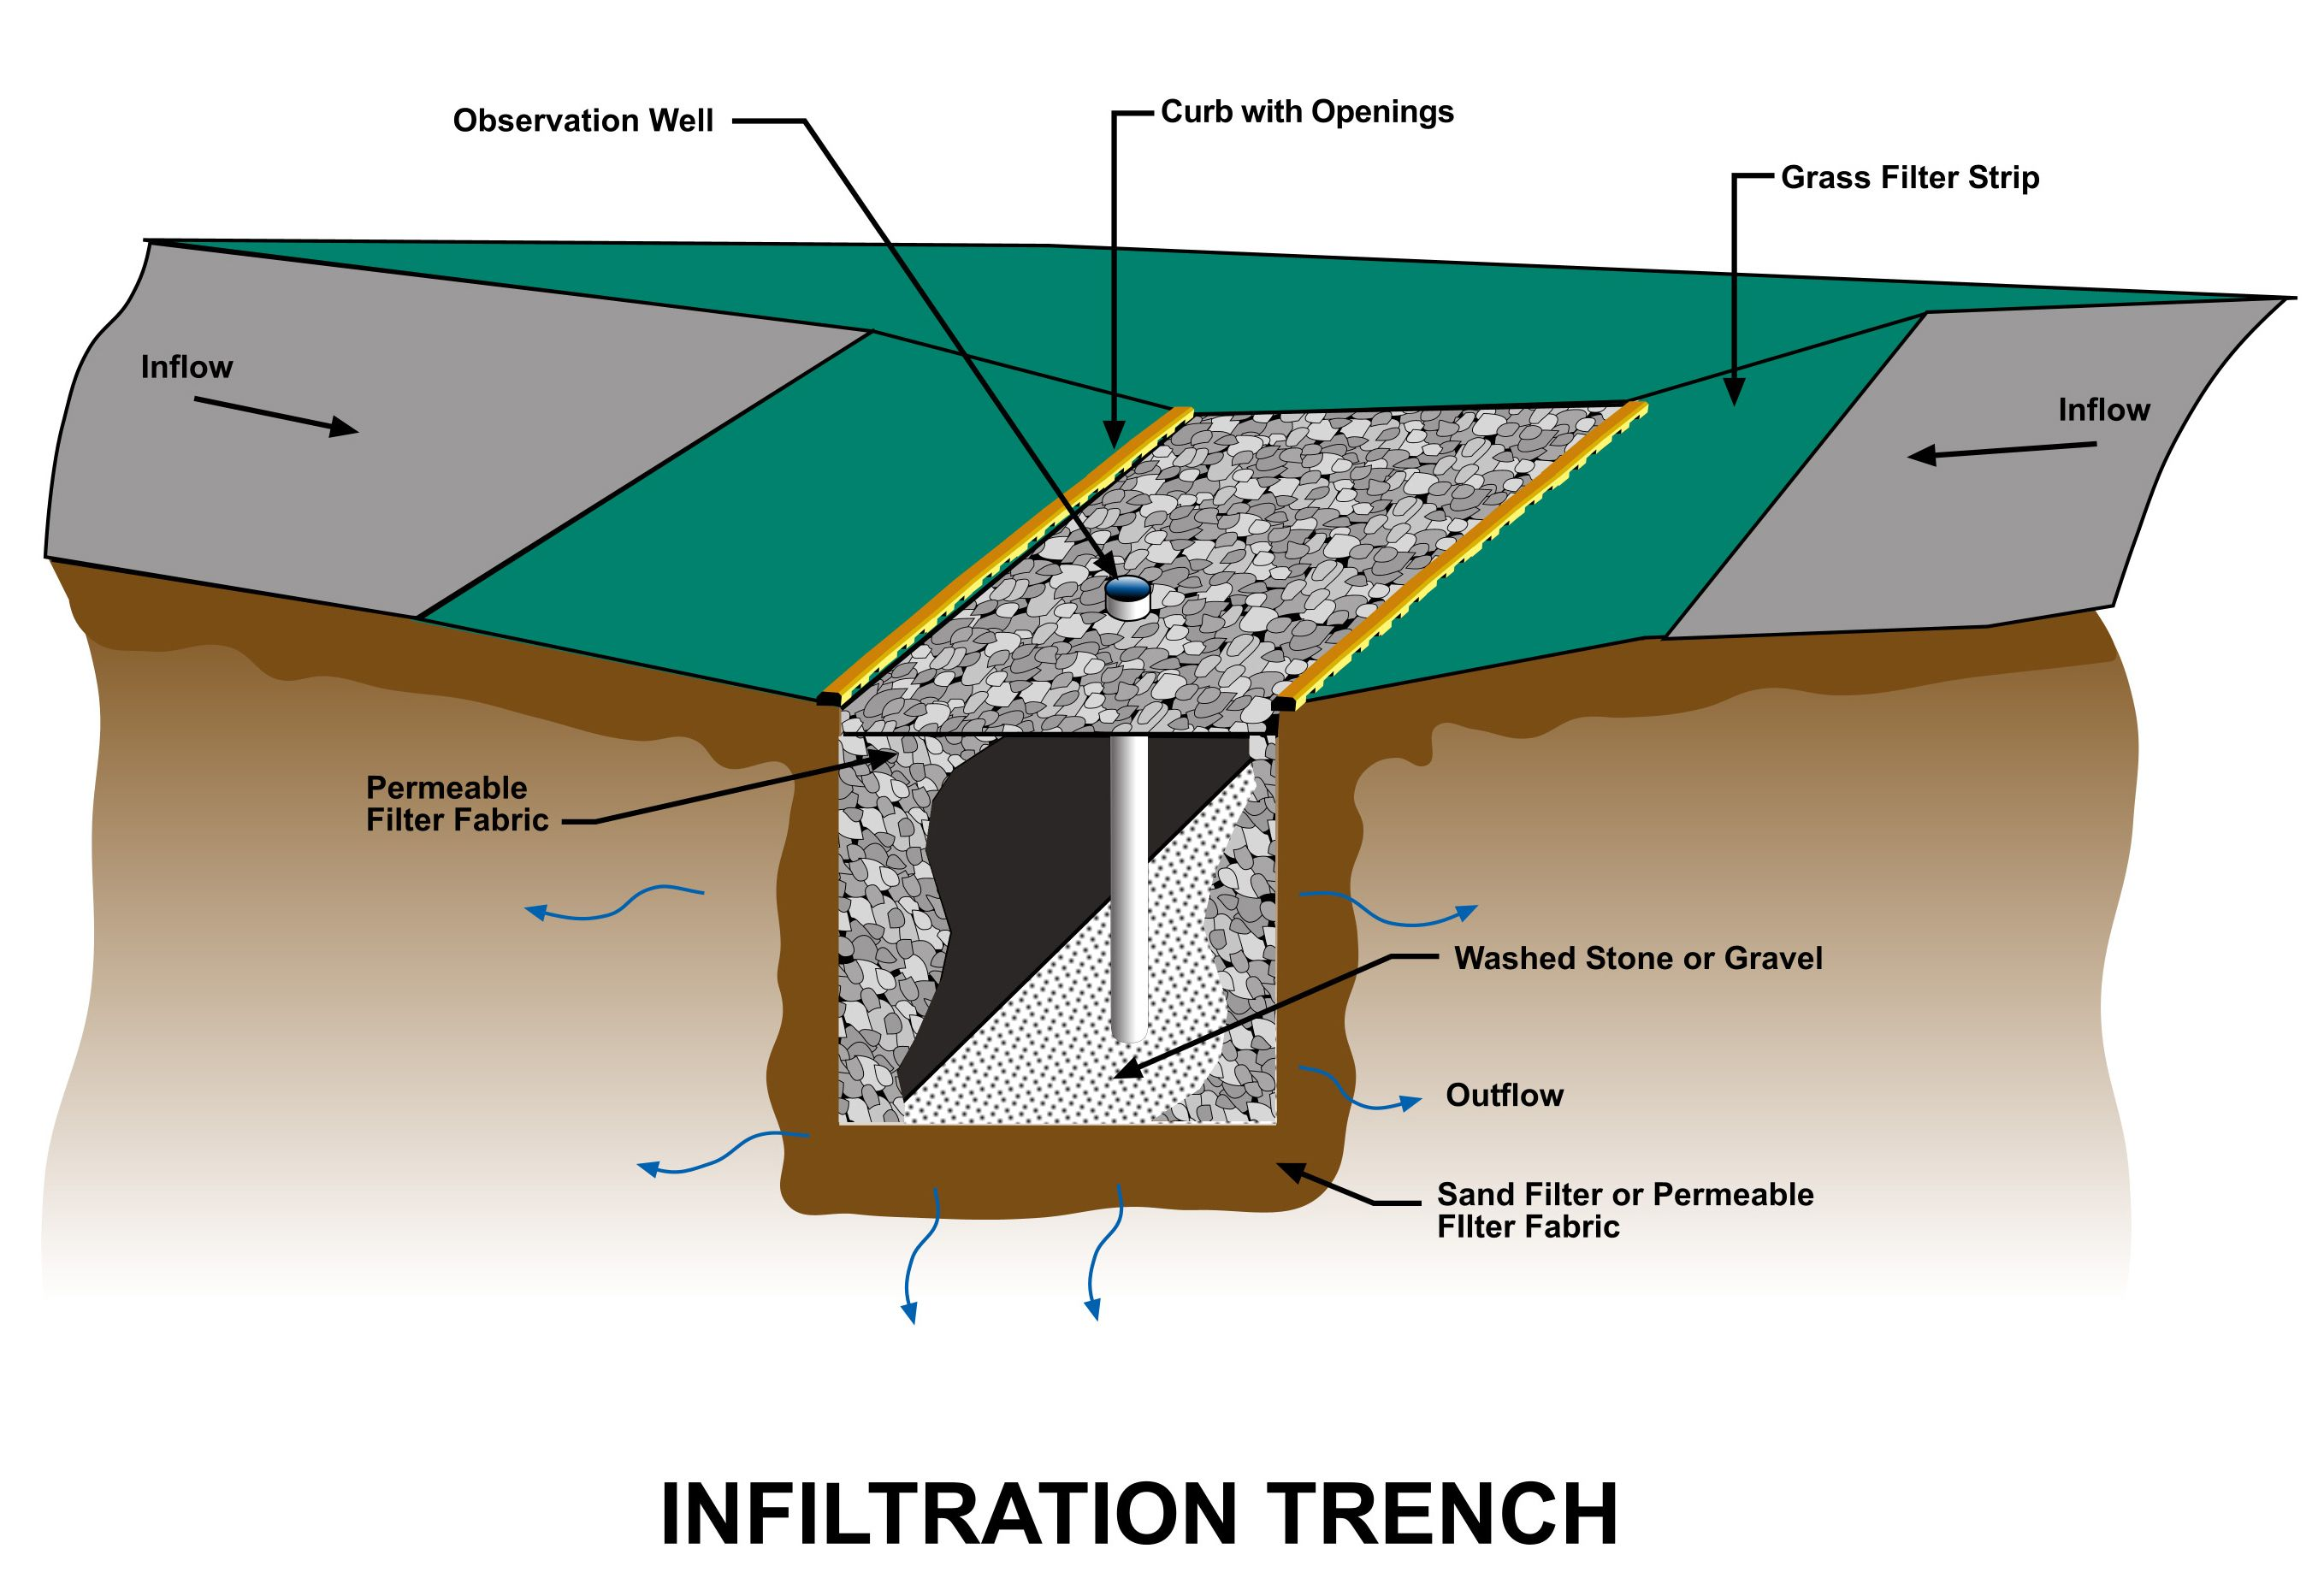 Infiltration Trench